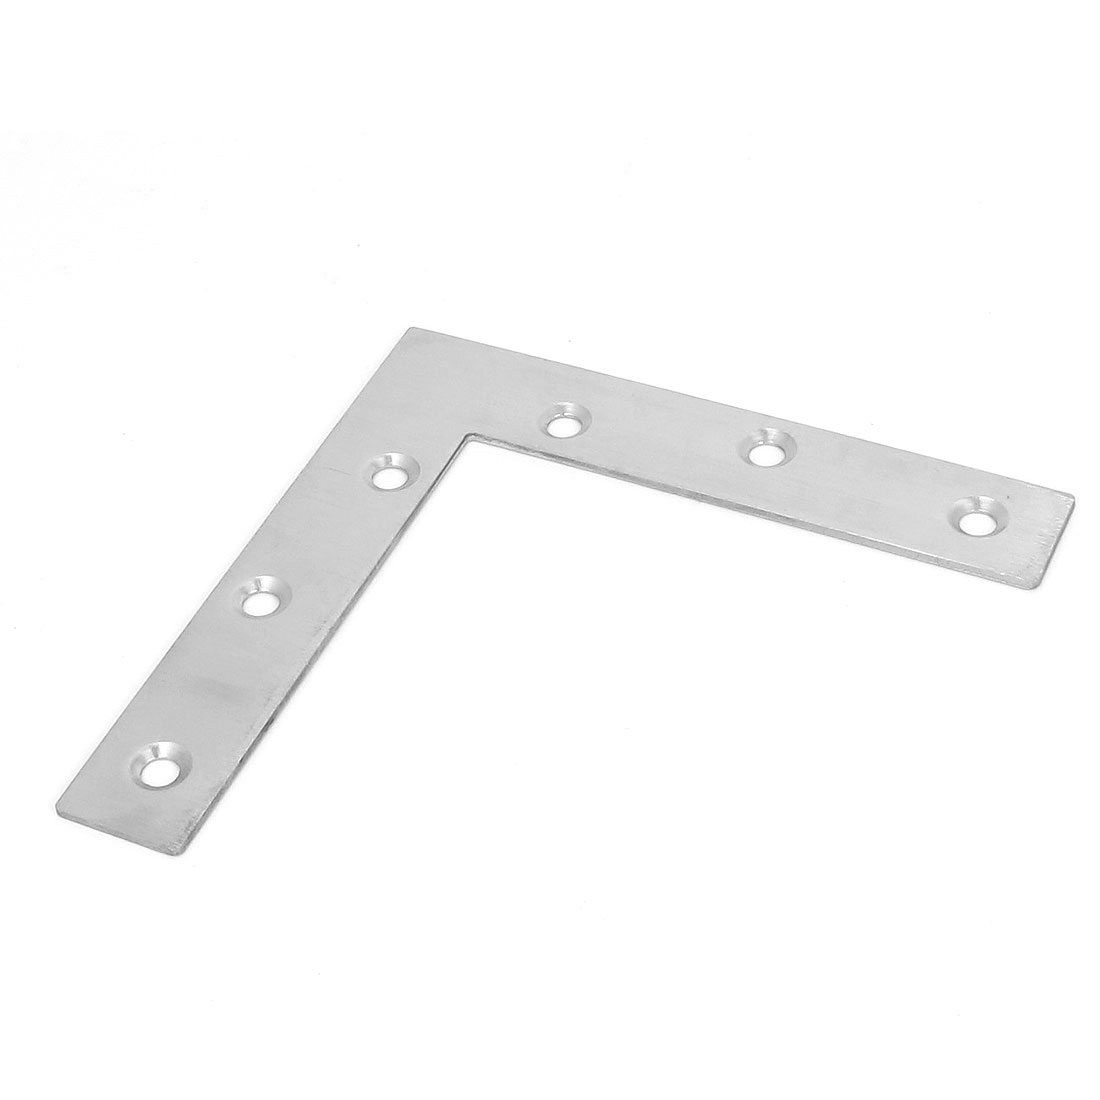 120mmx120mm Flat L Shape Corner Brace Mending Plate Right Angle Bracket